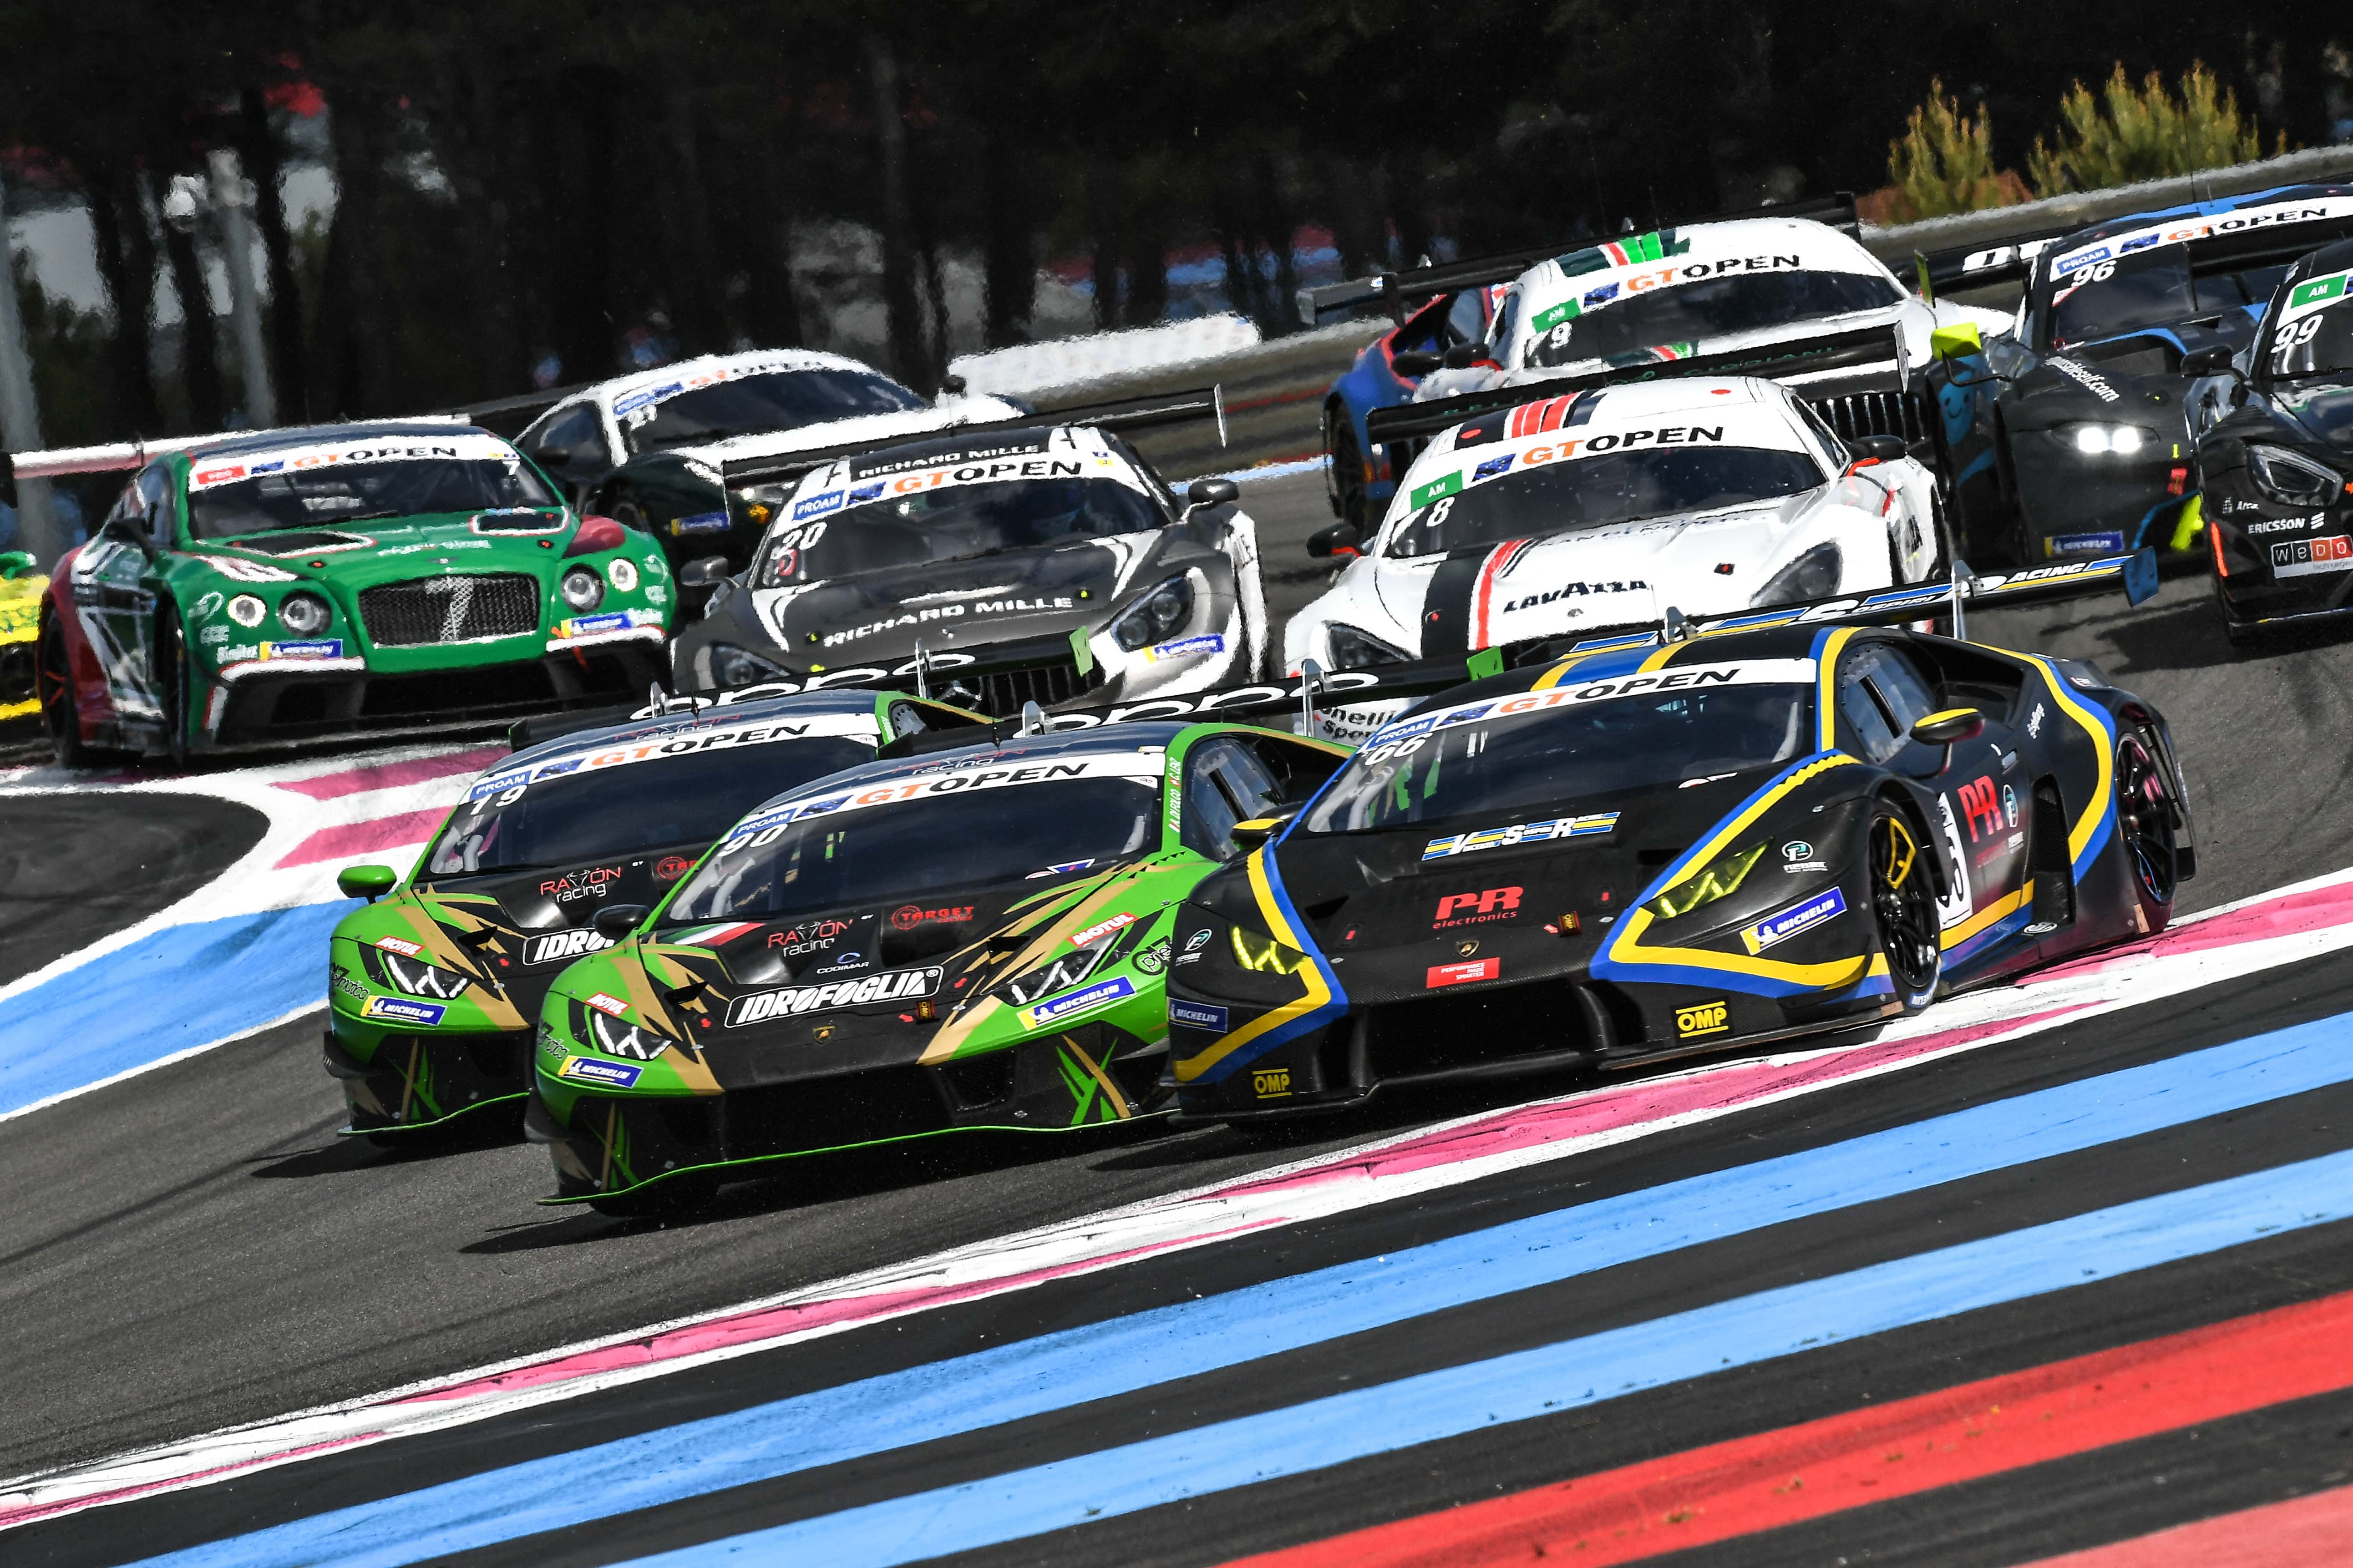 LING AND SCHANDORFF IN THE POINTS AT PAUL RICARD